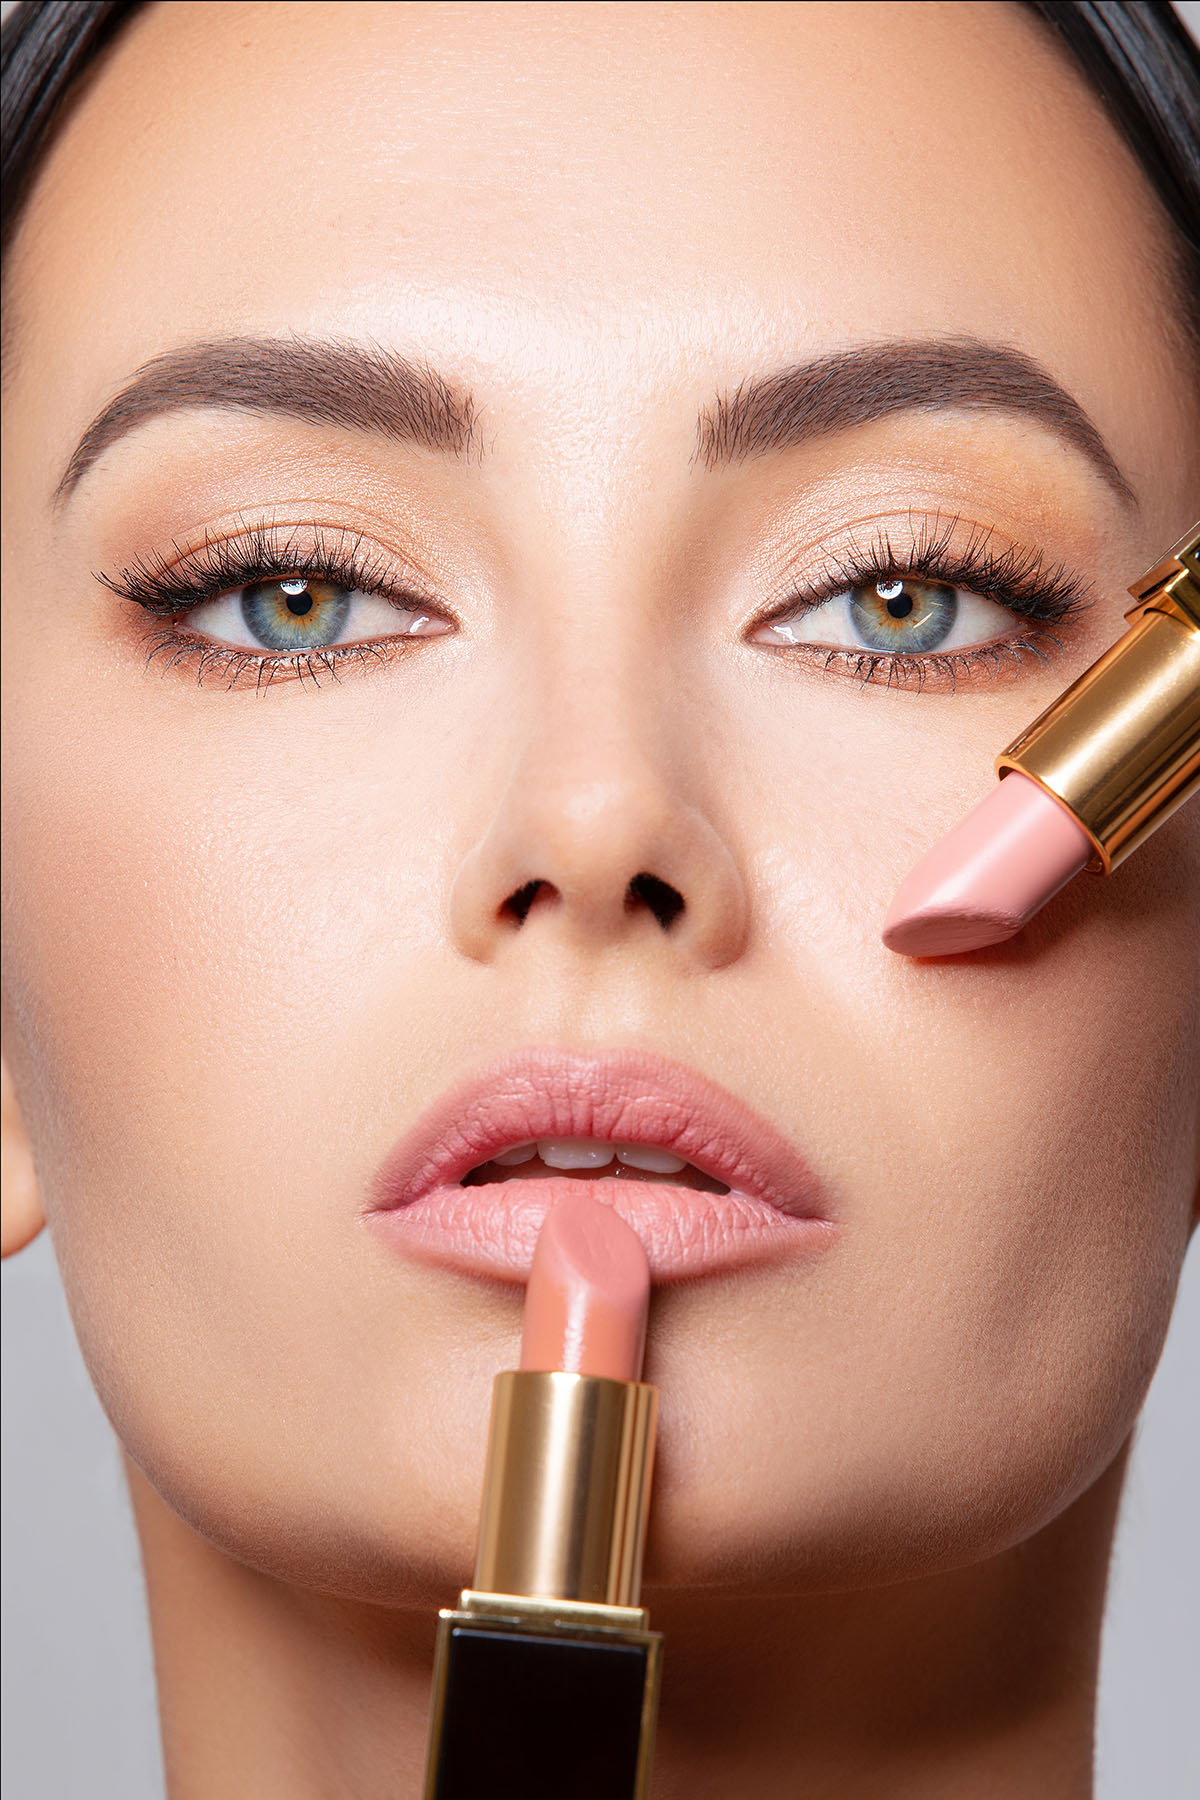 Beauty advert photoshoot of model with Tom Ford lipstick by Loesje Kessels - Fashion Photographer Dubai